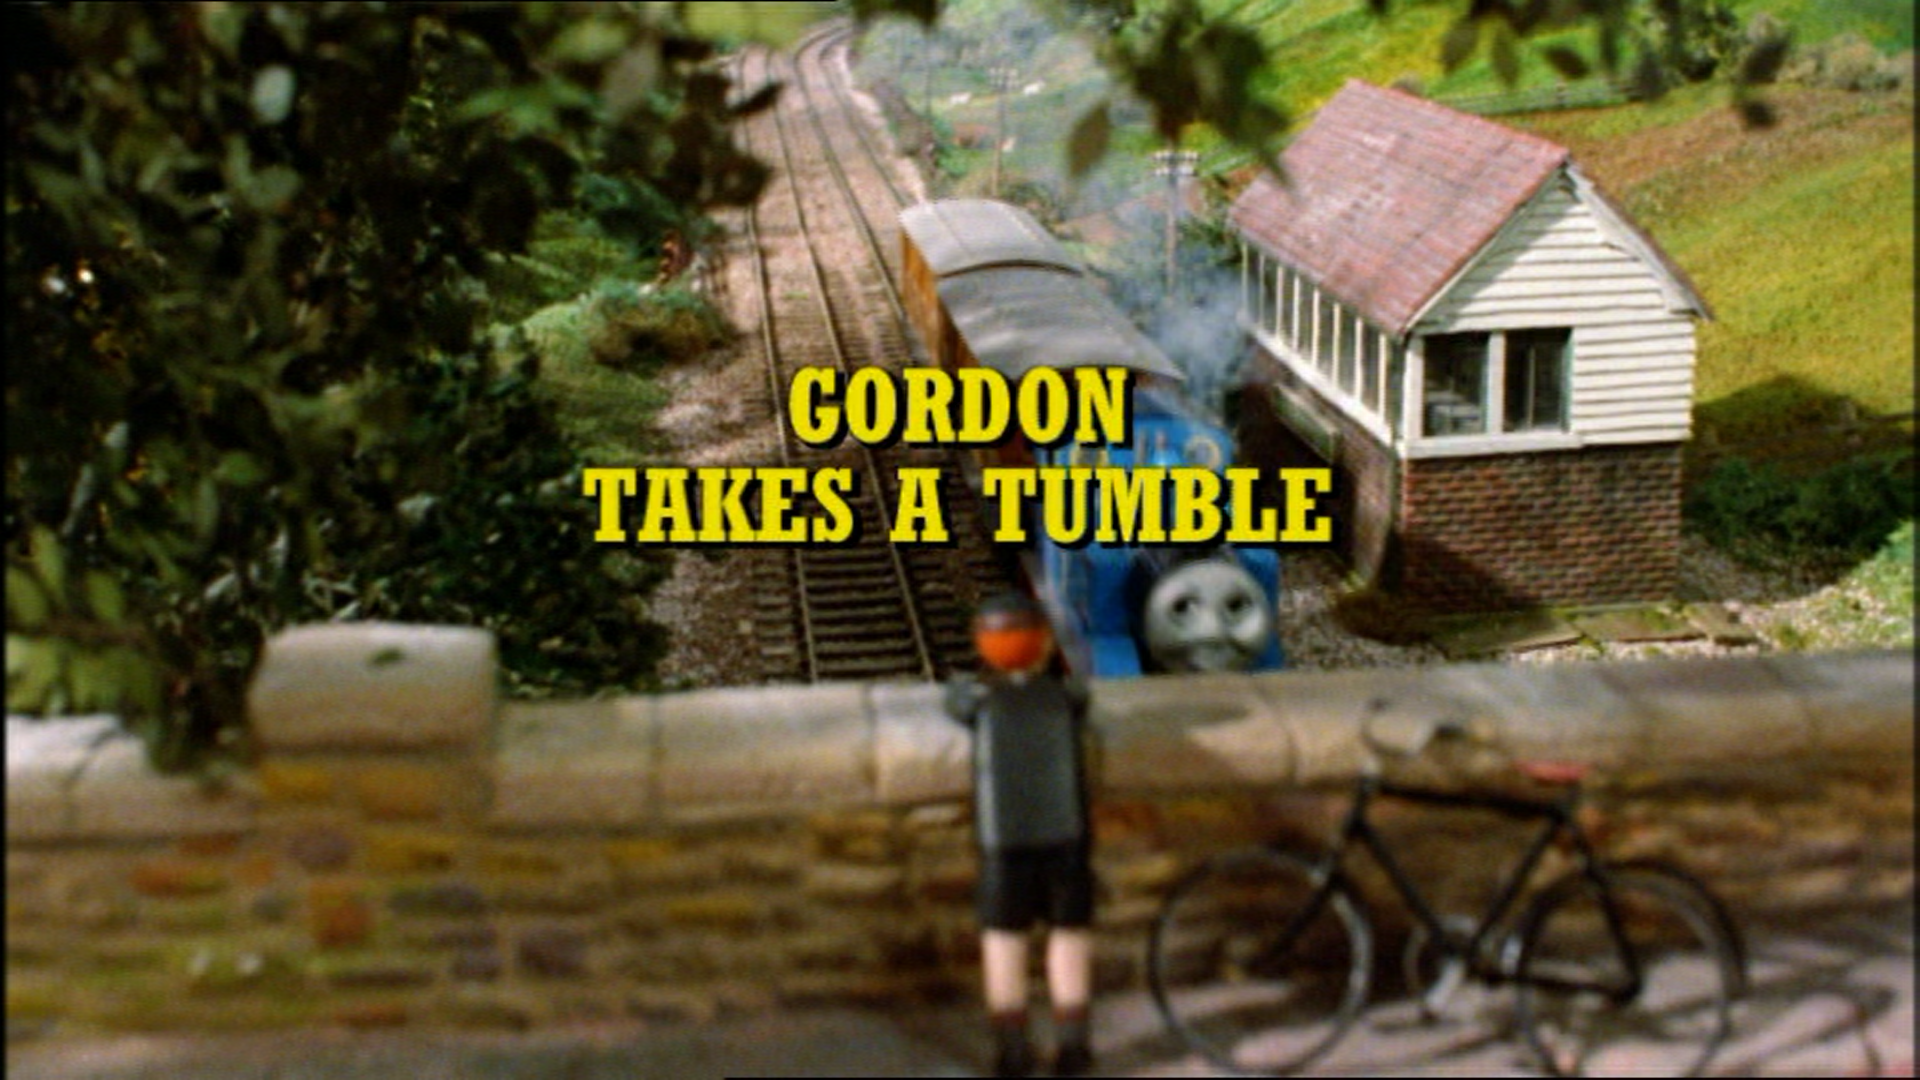 File:GordonTakesaTumbletitlecard.png